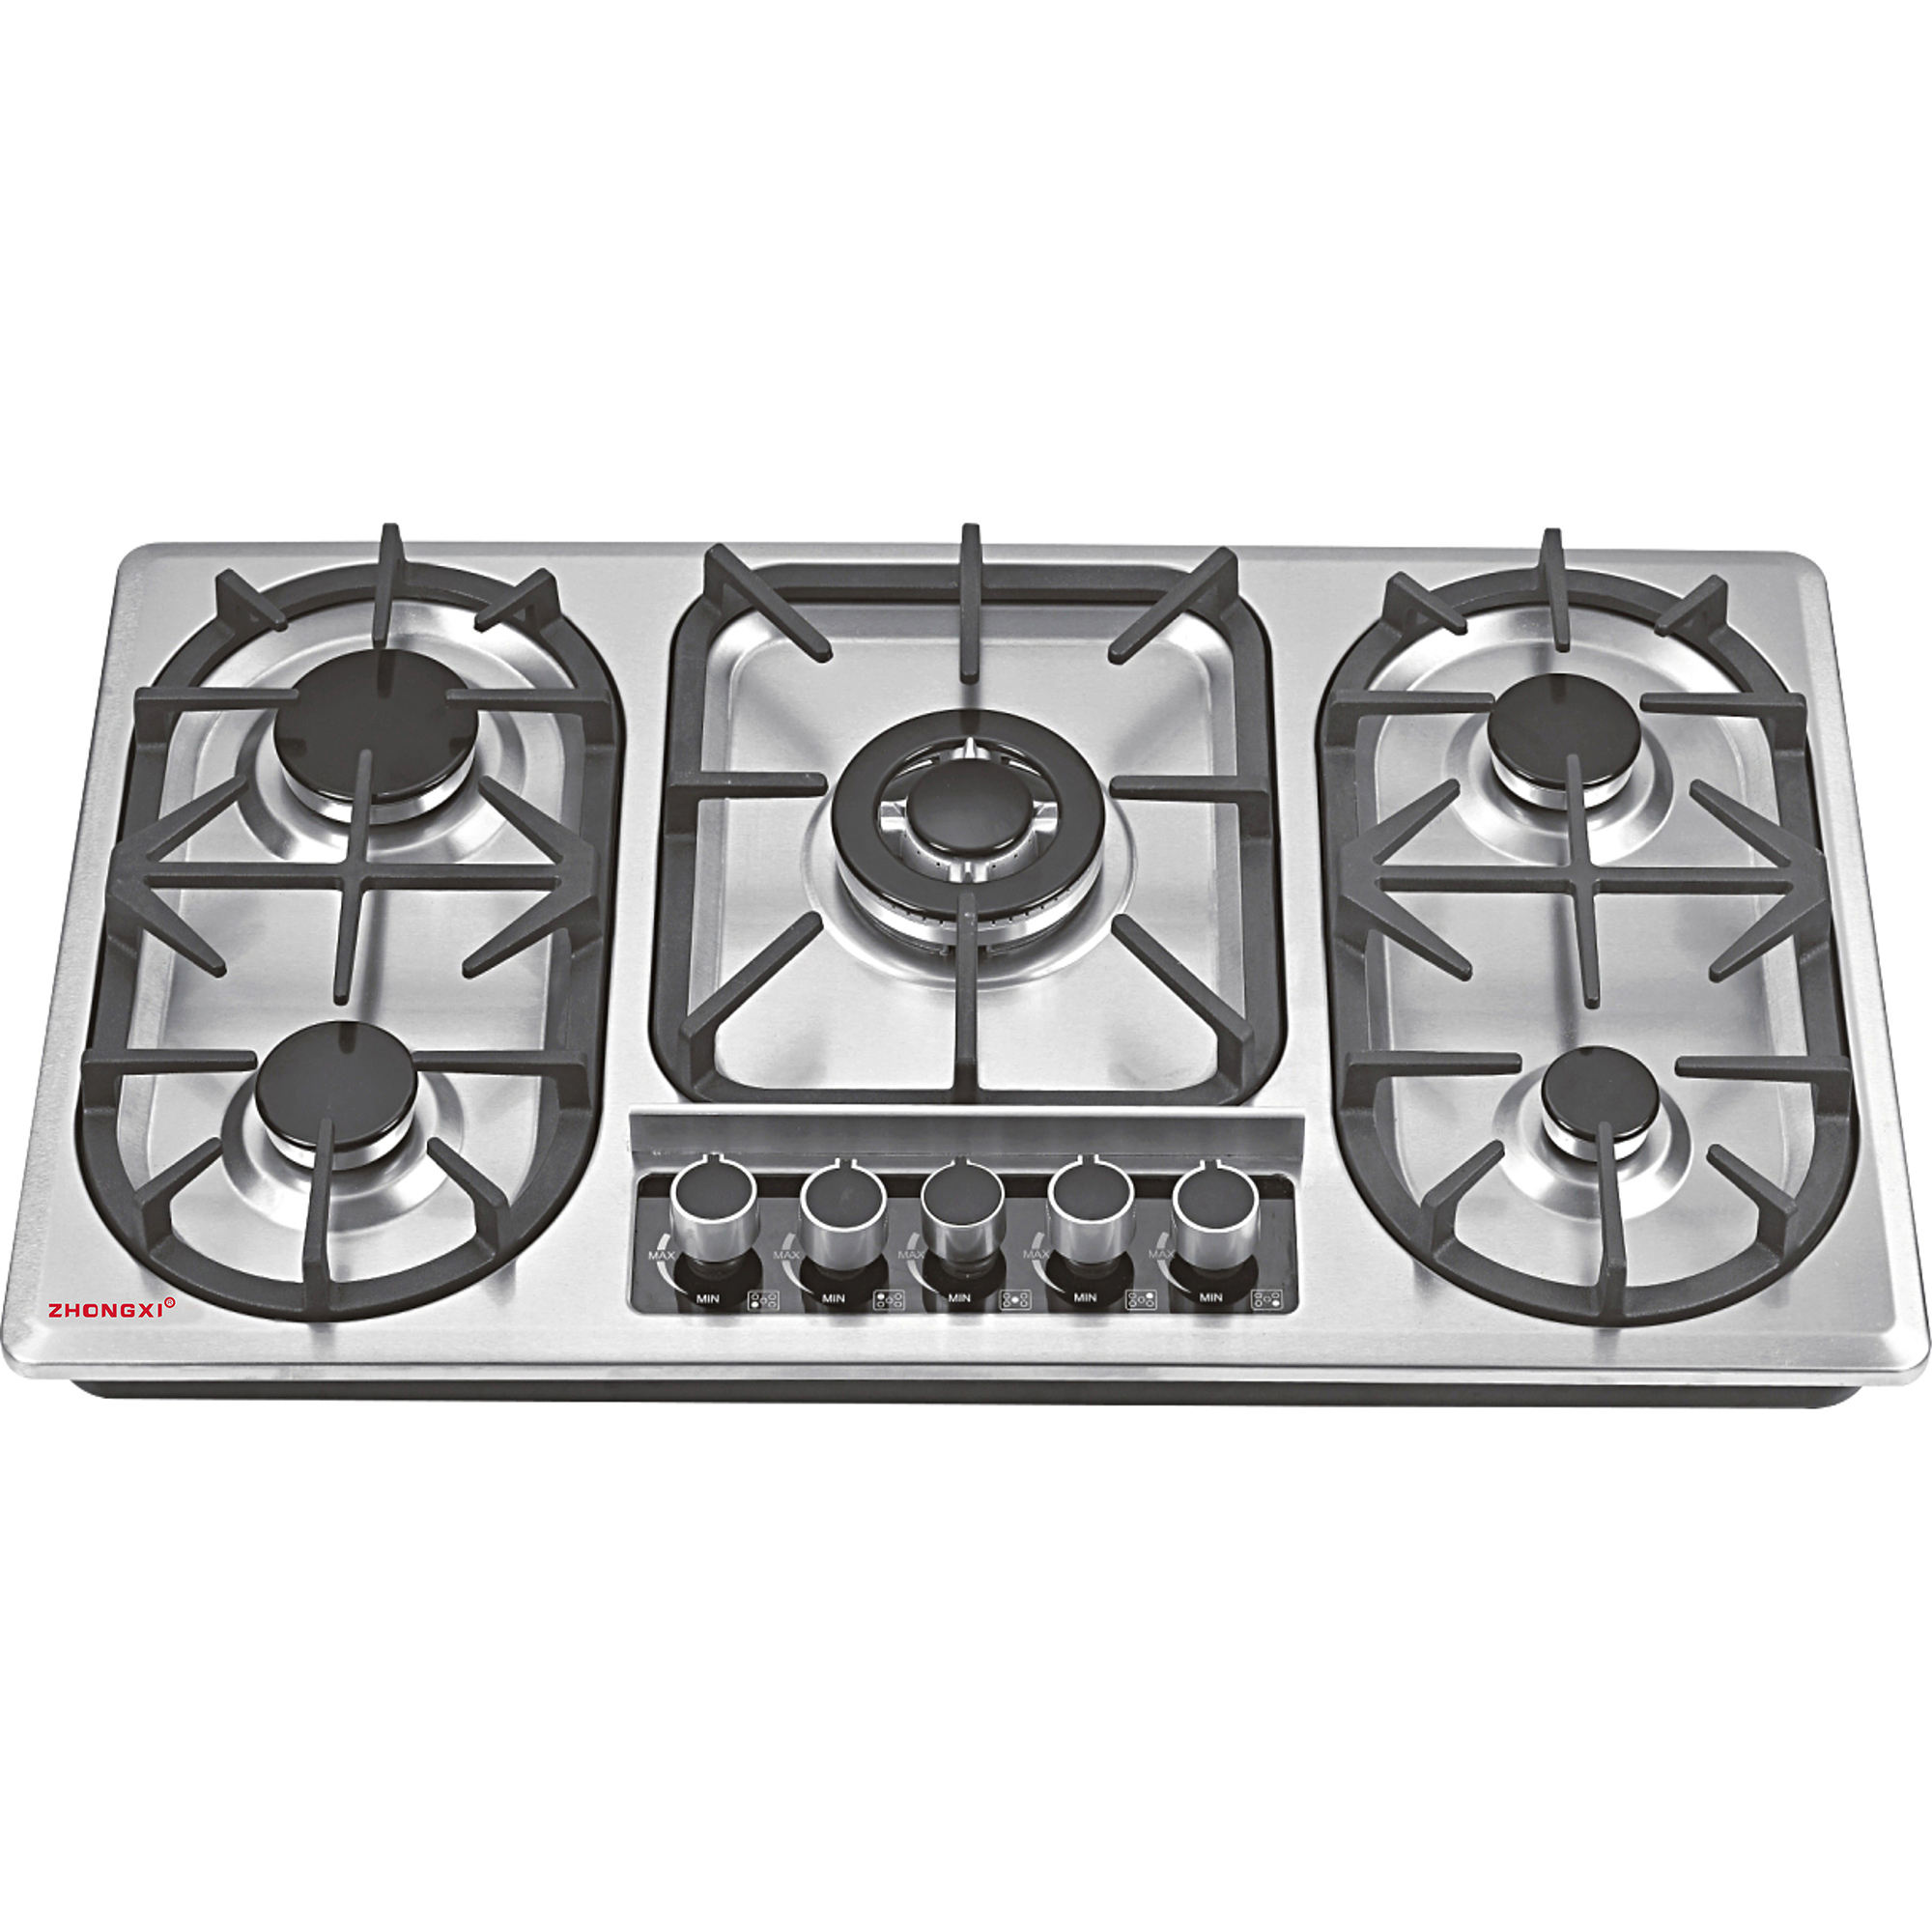 Stainless steel panel built in sabaf 5 burners LPG gas cooker stove